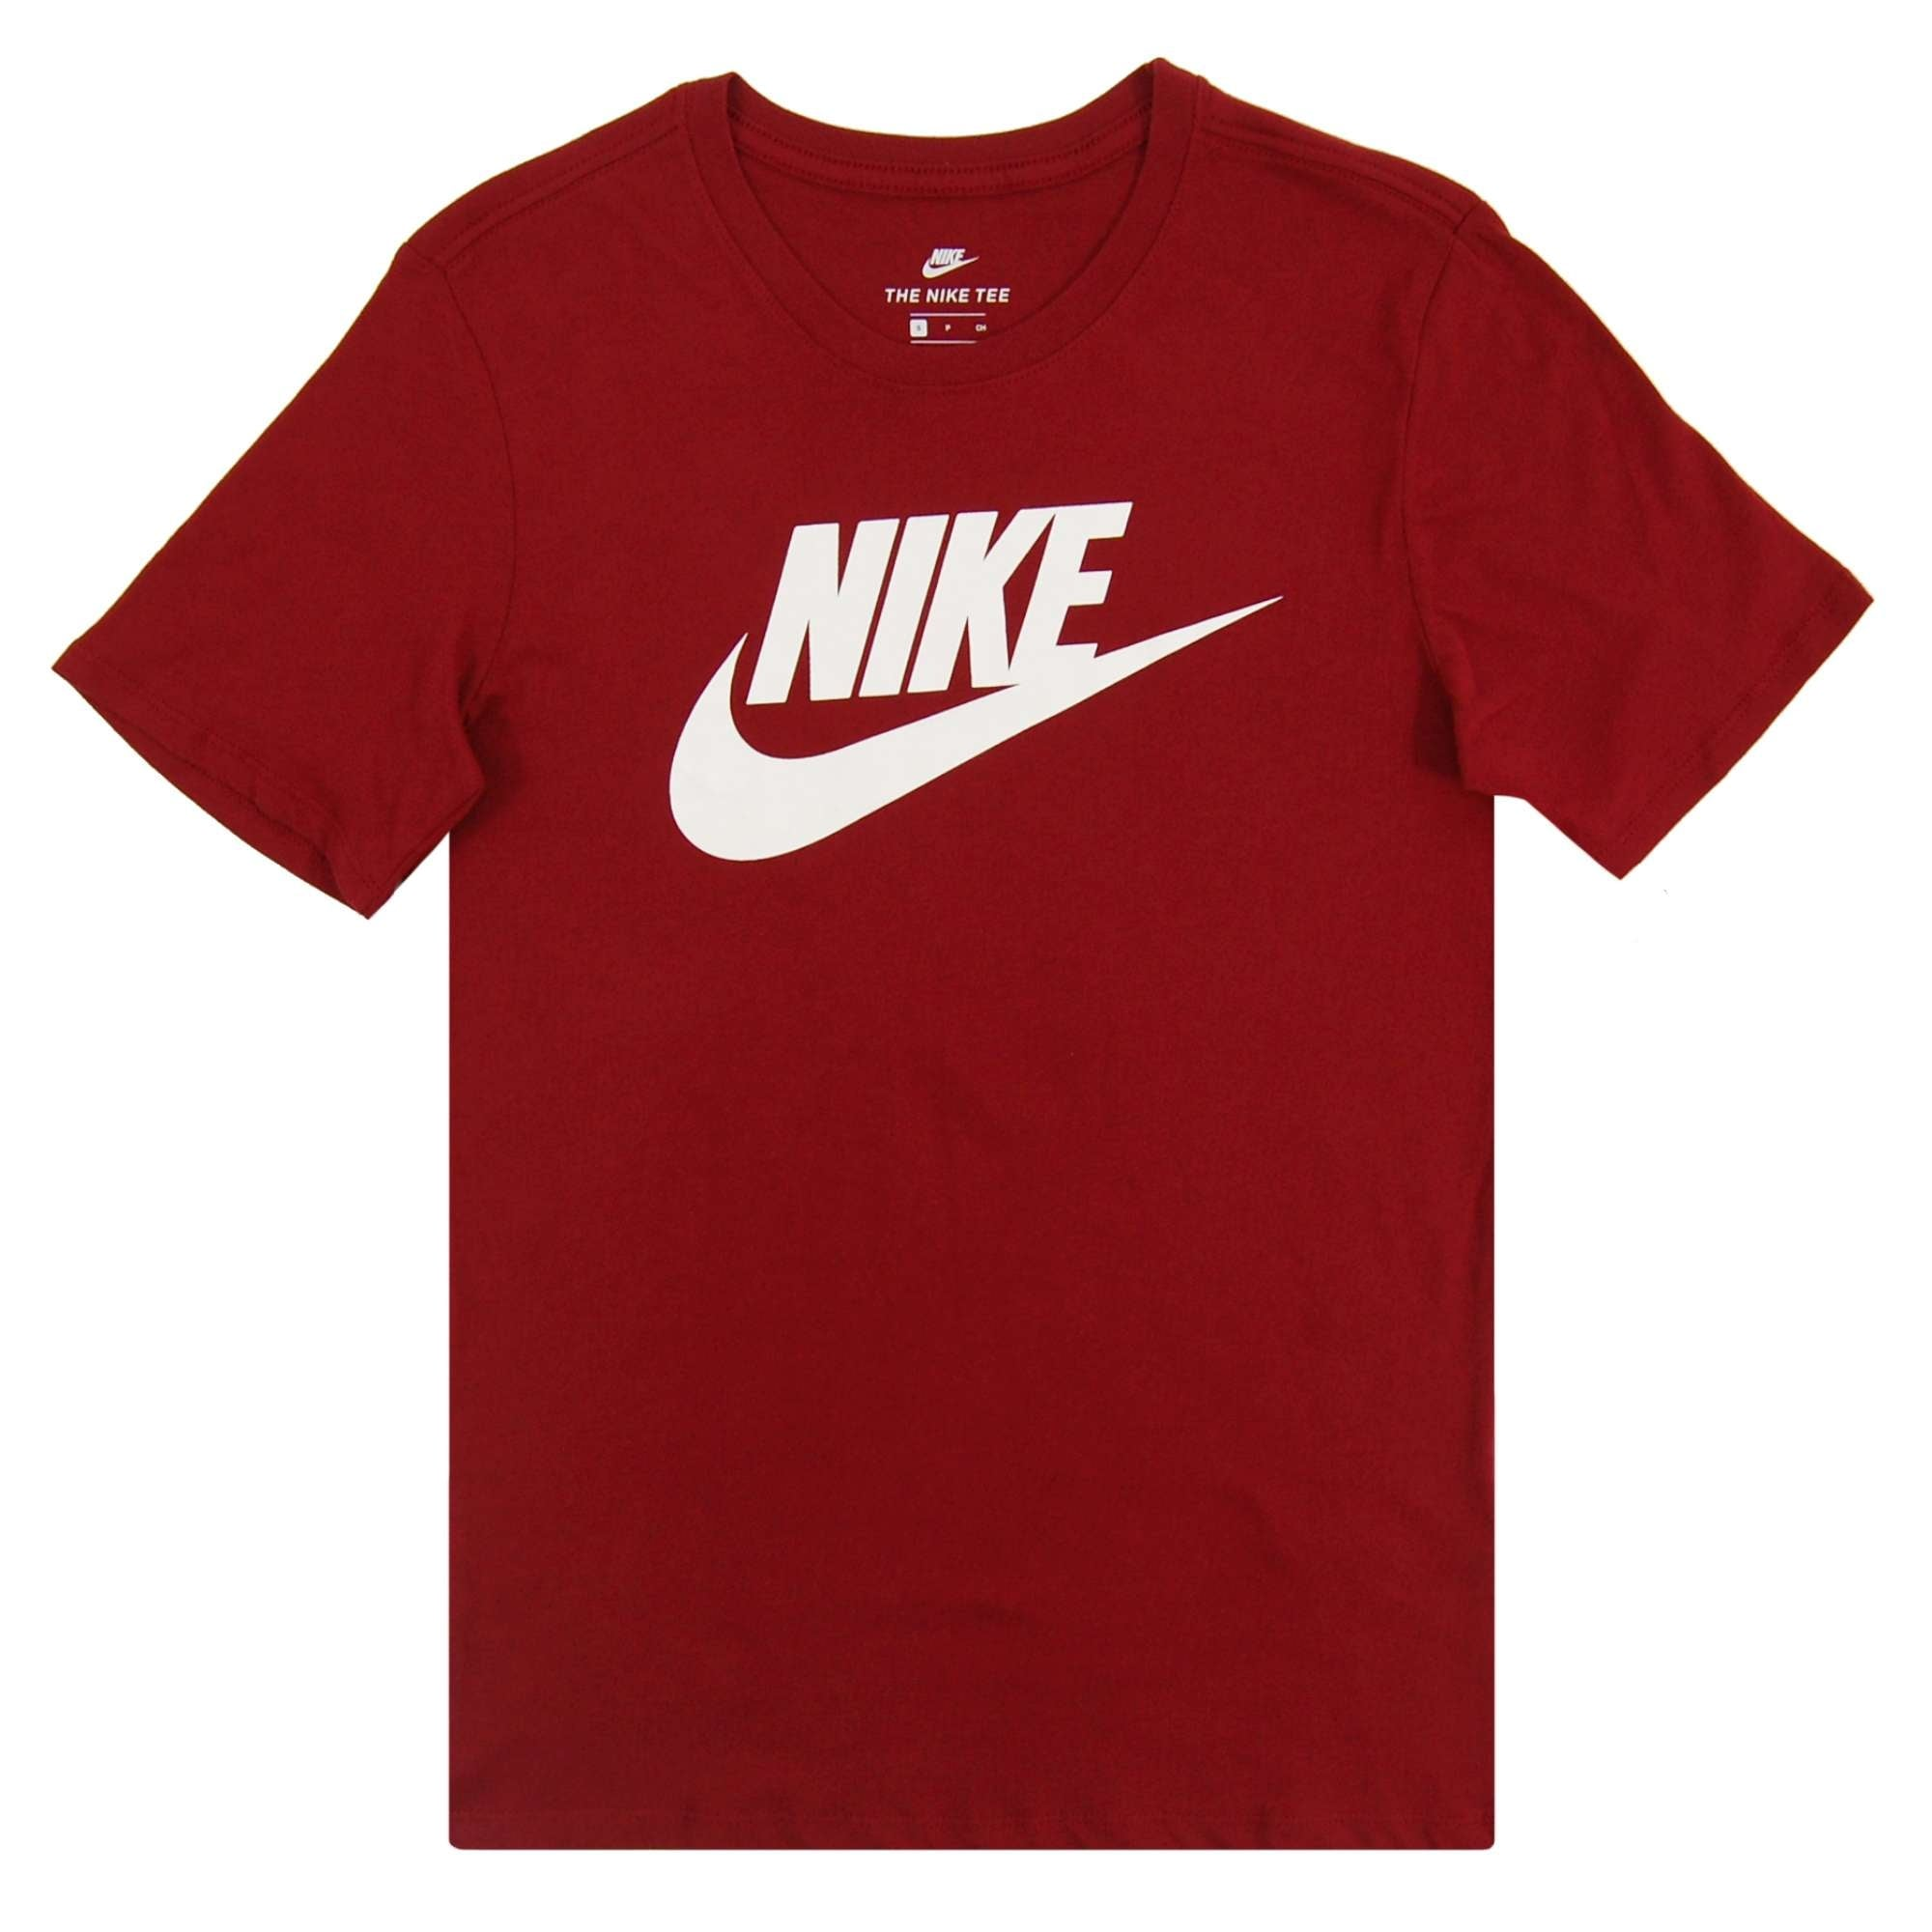 look good shoes sale best shoes save up to 80% Nike Futura Icon T-Shirt Team Red White - Mens Clothing from Attic ...